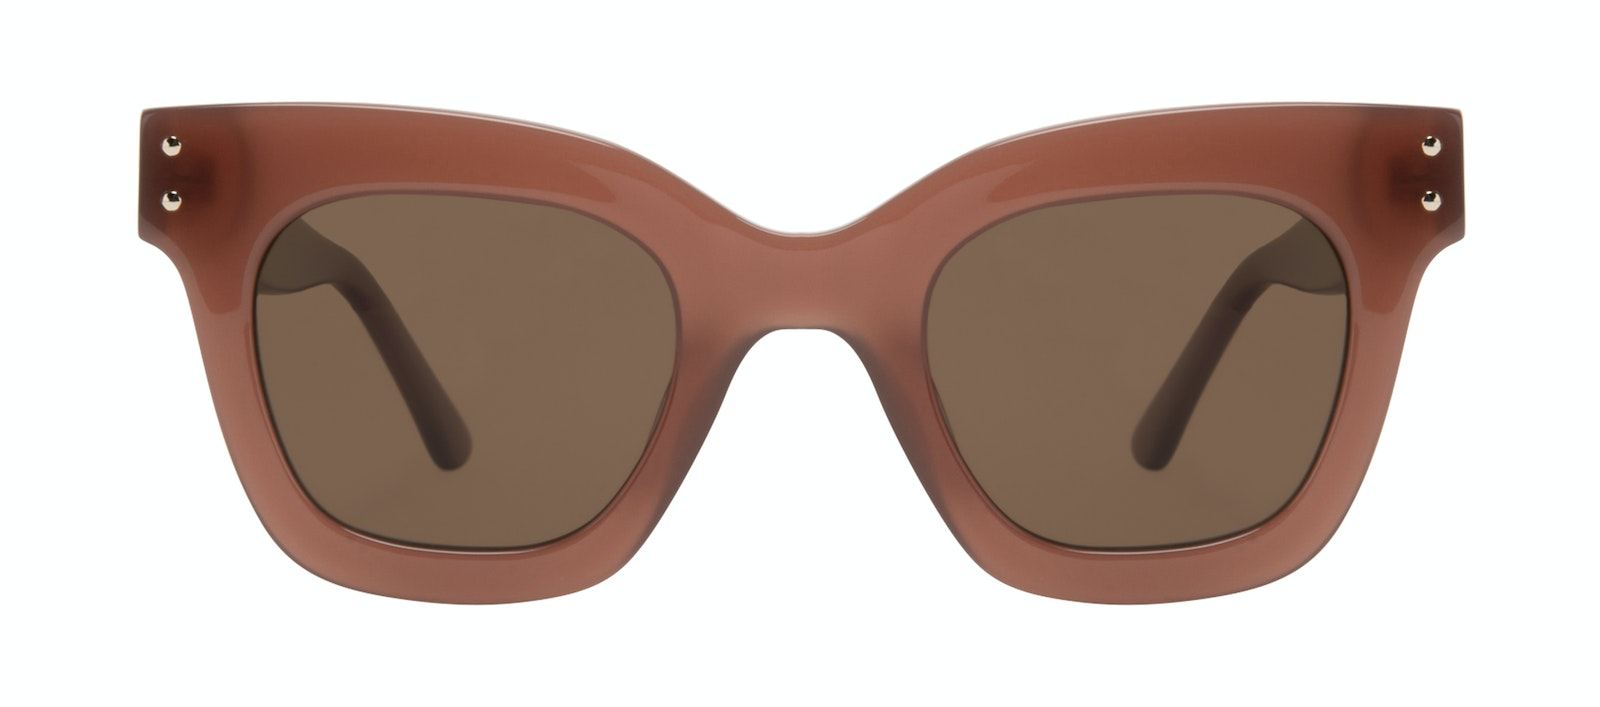 Affordable Fashion Glasses Square Sunglasses Women Fever Toffee Front